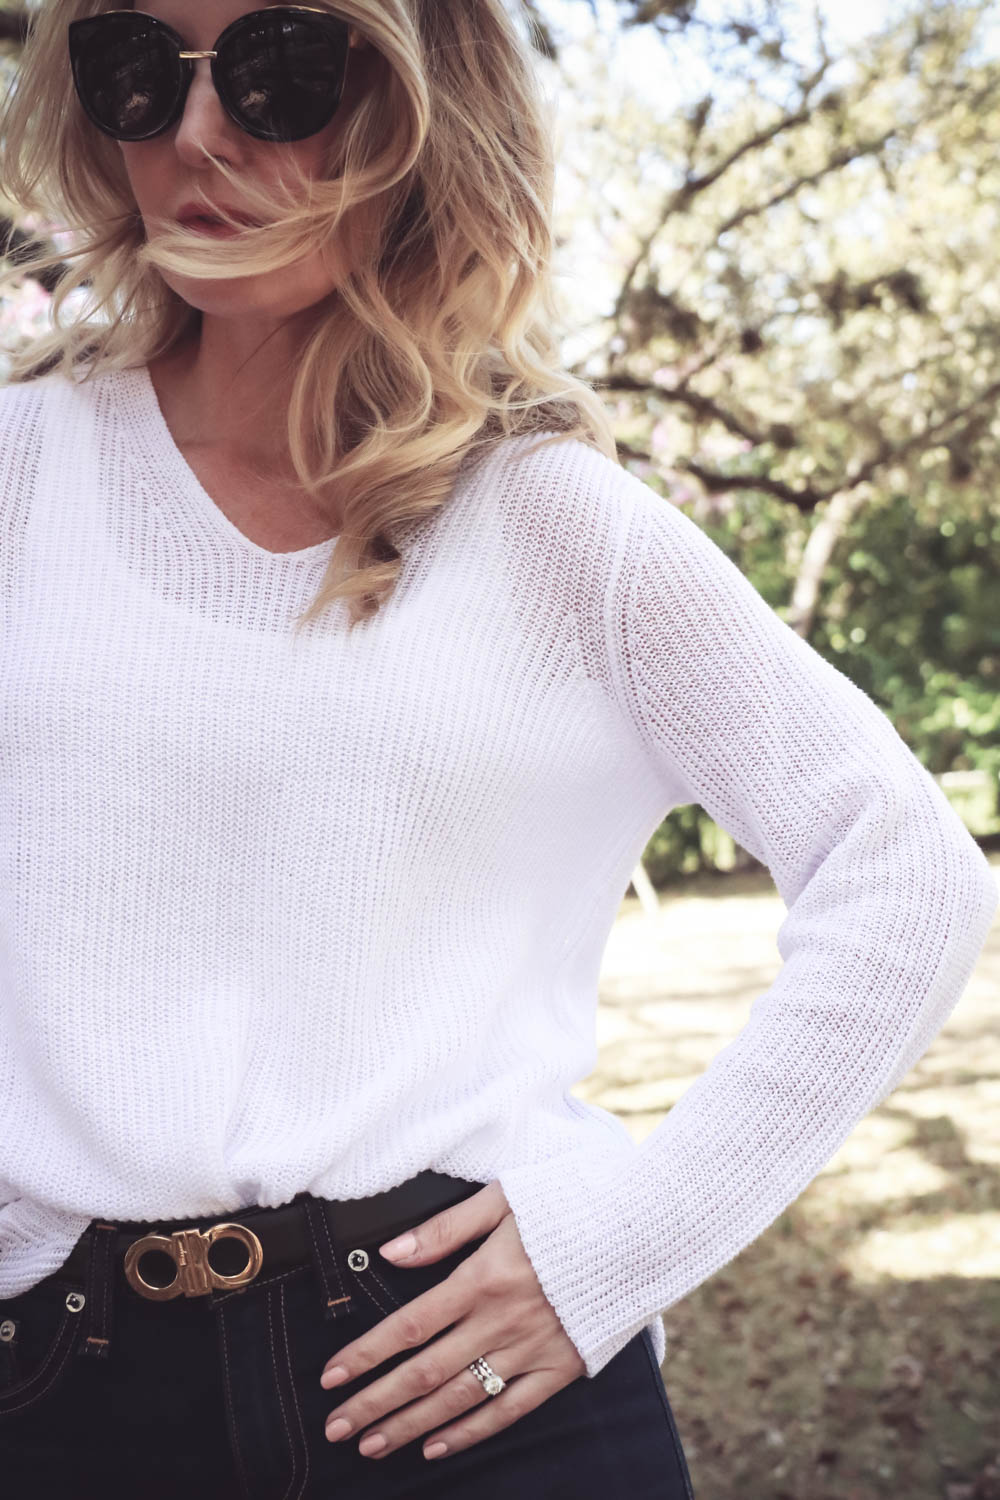 Erin Busbee fashion blogger and youtuber on busbeestyle wearing white cotton sweater v-neck by Eileen fisher